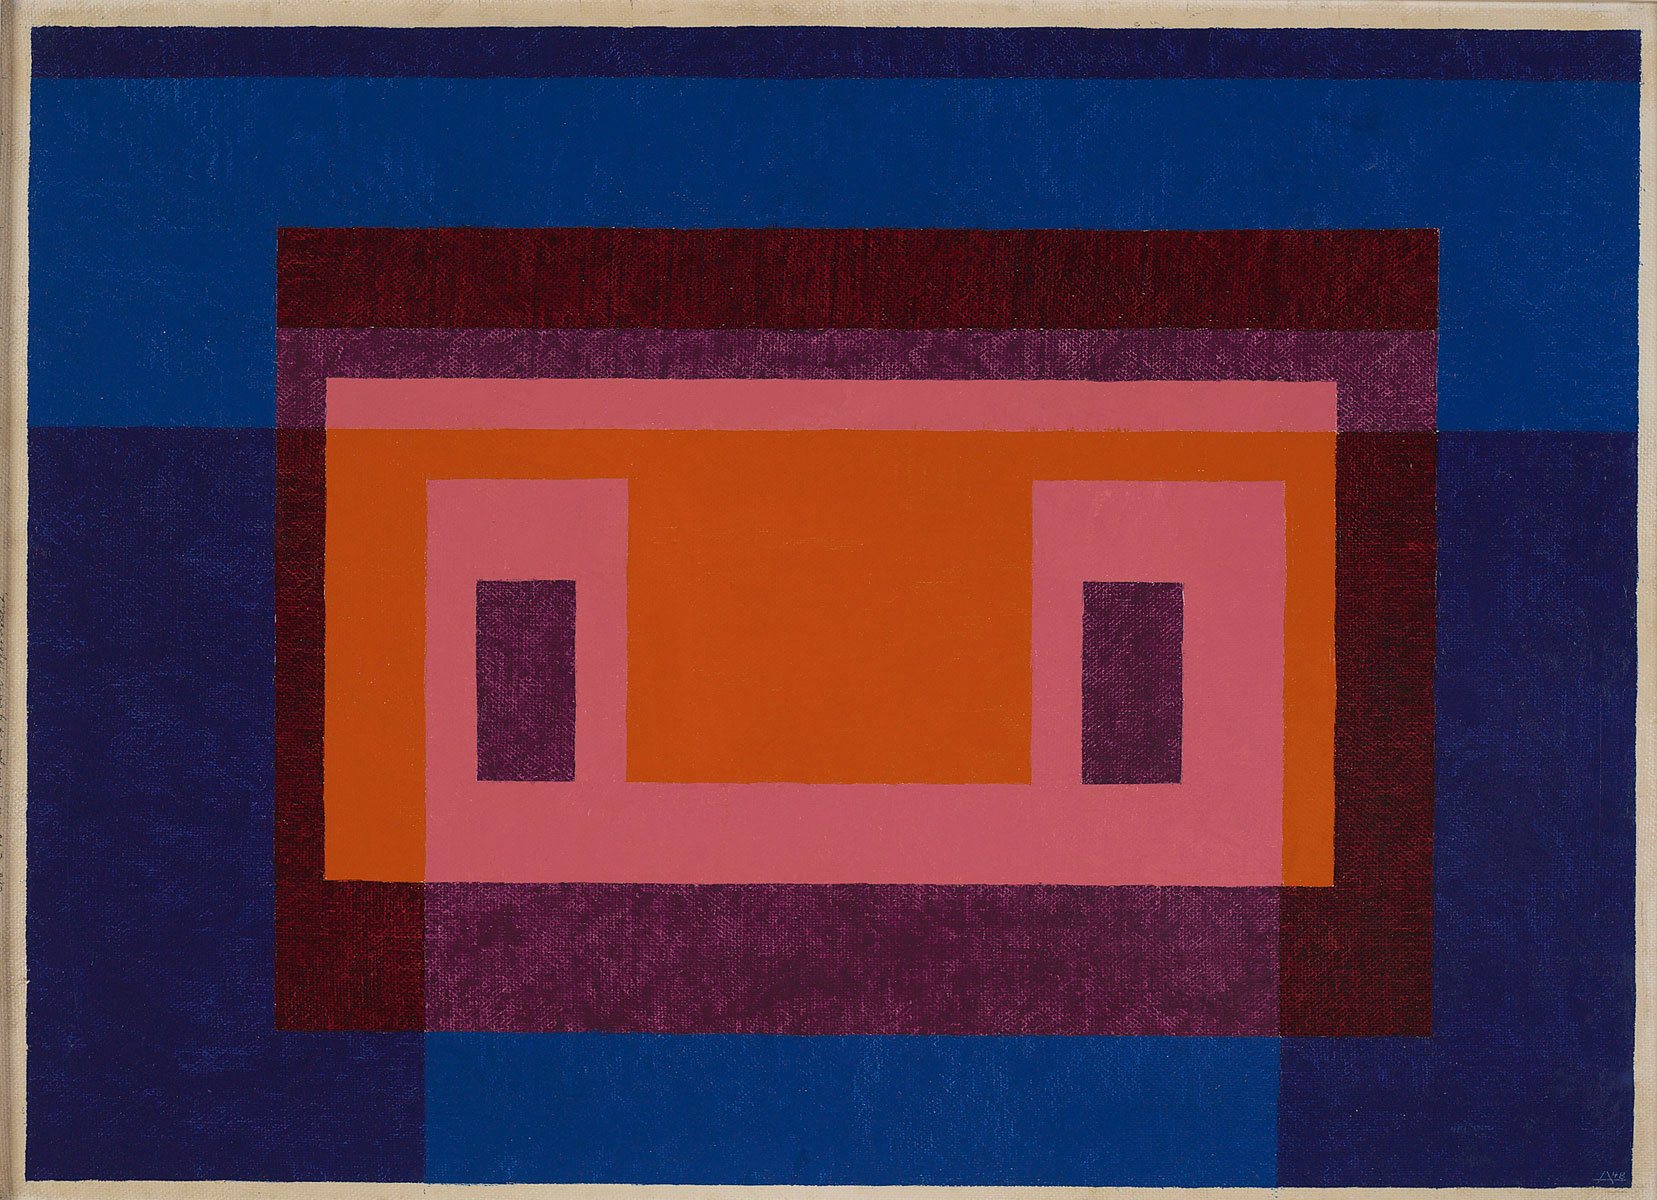 Josef Albers, Variant / Adobe, 4 Central Warm Colors Surrounded by 2 Blues, 1948, 63,5 x 88,9 cm;